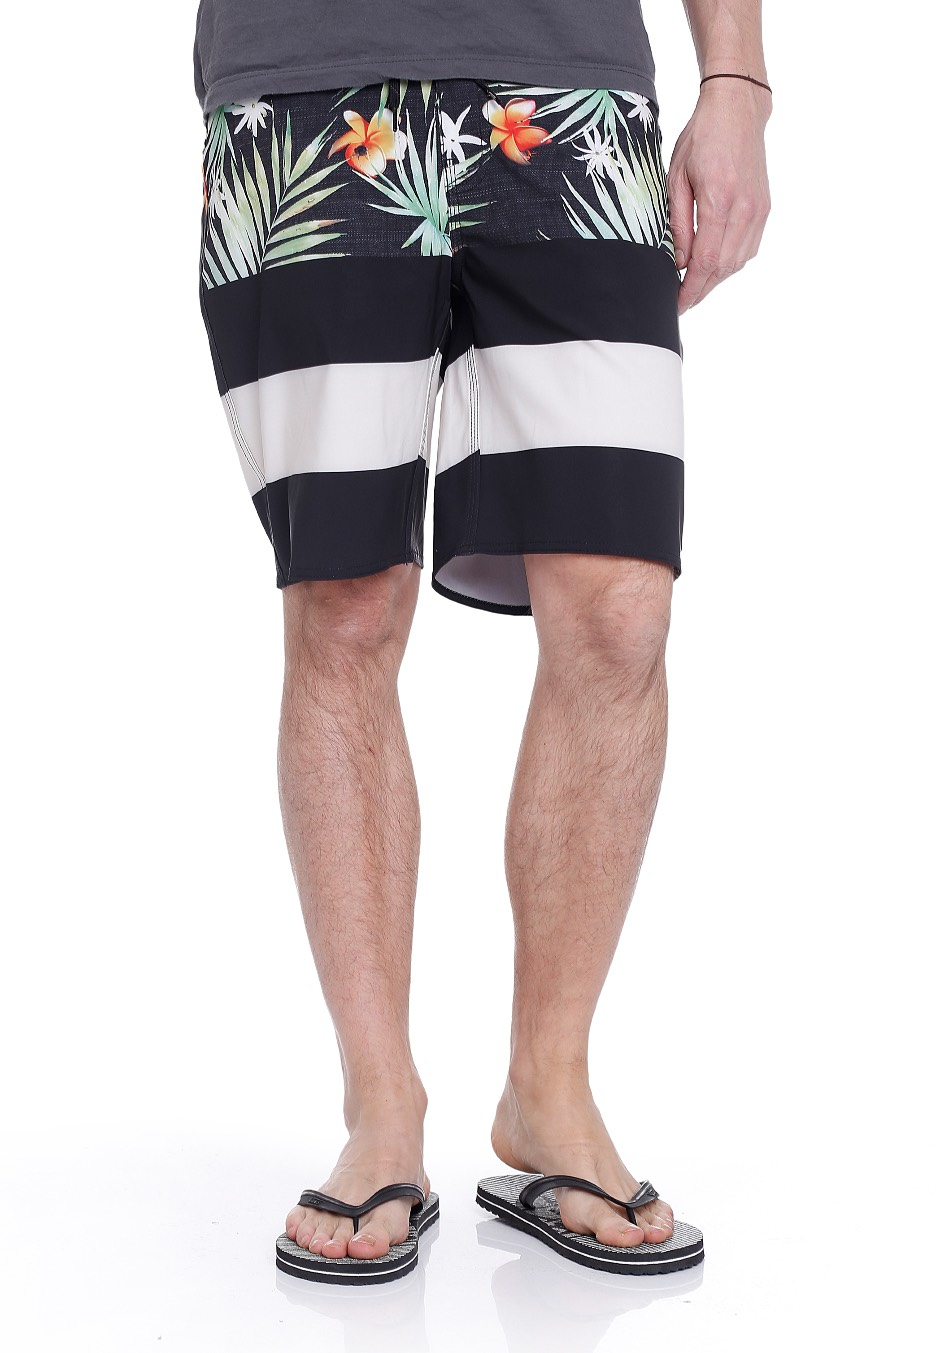 dd1a54fb70925 Vans - Era Black Decay Palm - Board Shorts - Impericon.com UK